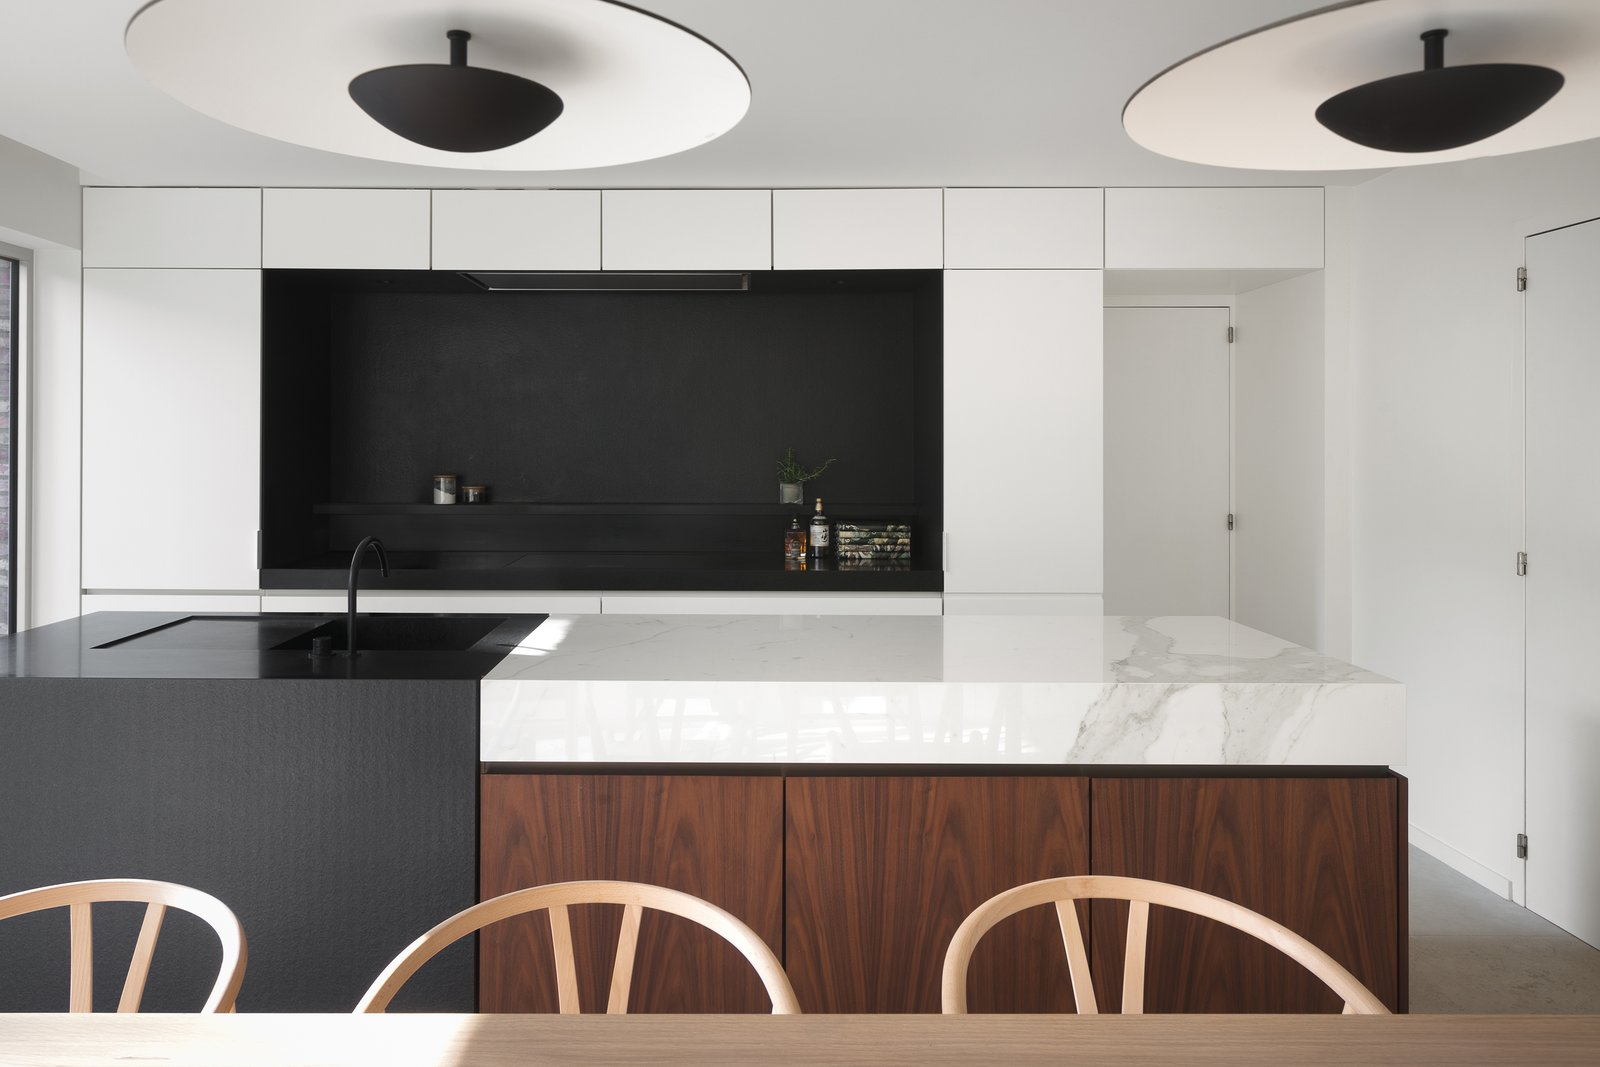 Kitchen, Ceiling Lighting, Undermount Sink, and Marble Counter  Photo 3 of 21 in BC House by Dieter Vander Velpen